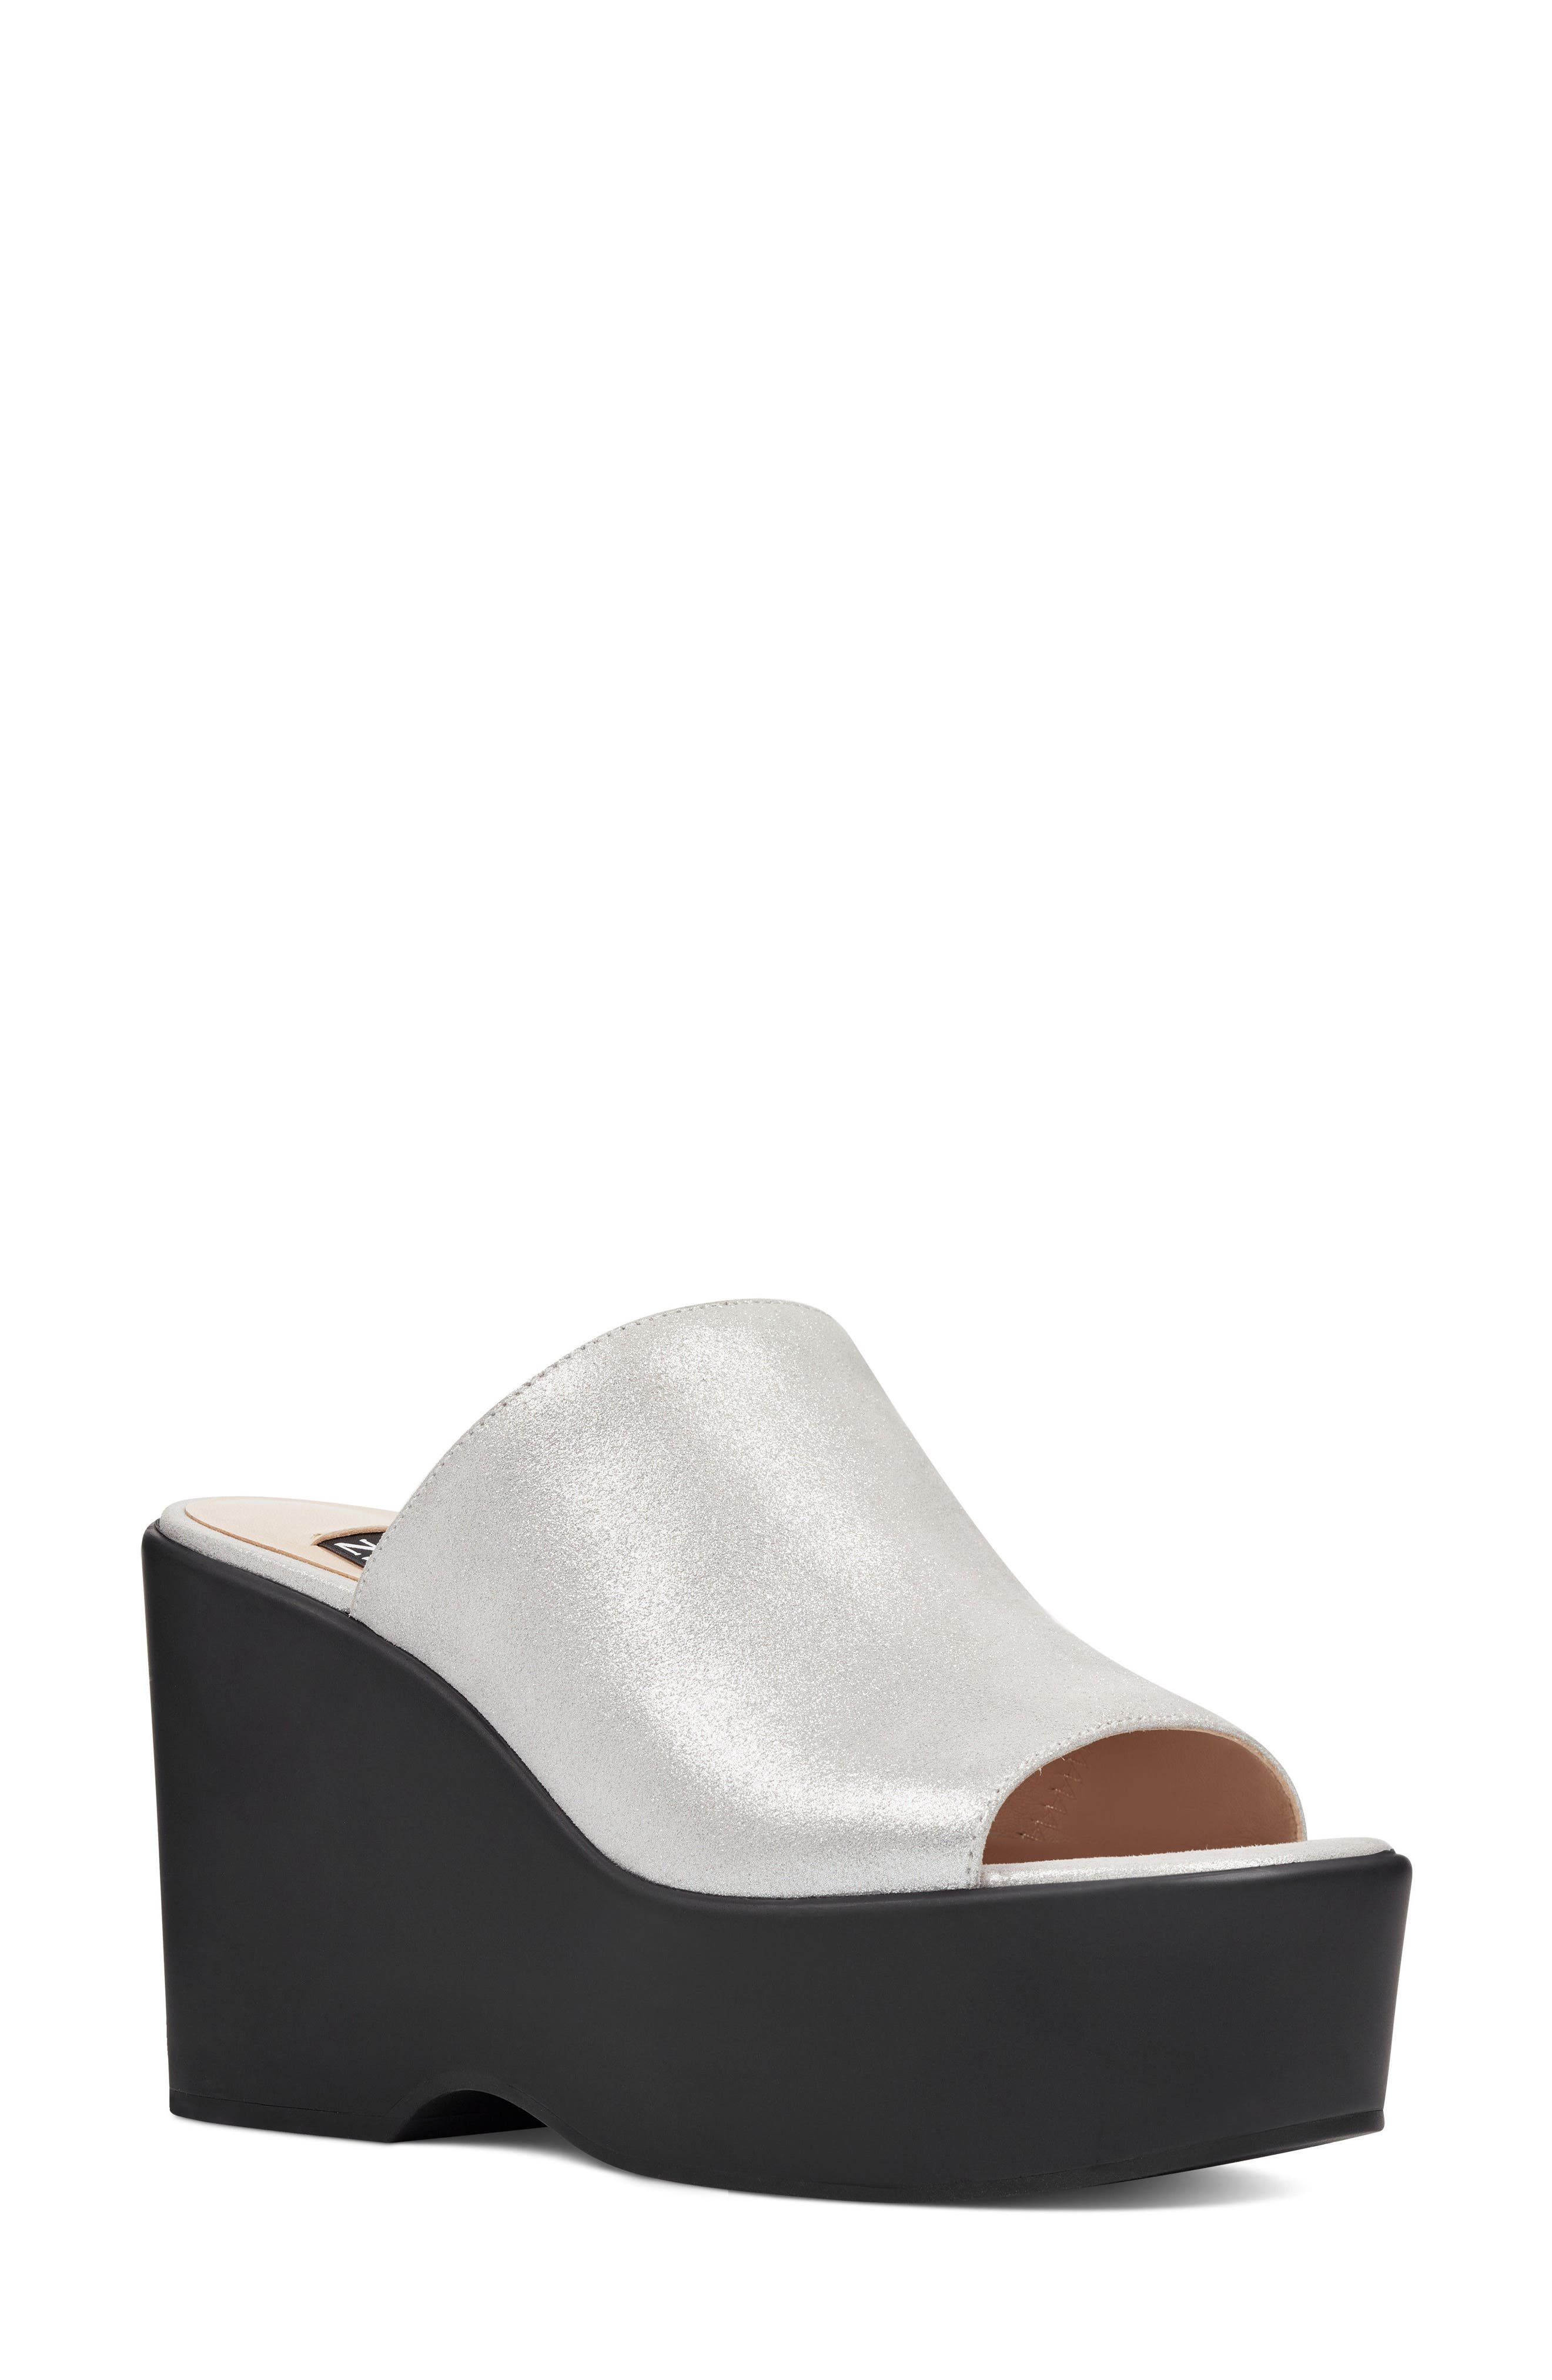 Tomo - 40th Anniversary Capsule Collection Platform Sandal,                         Main,                         color, Light Silver Leather